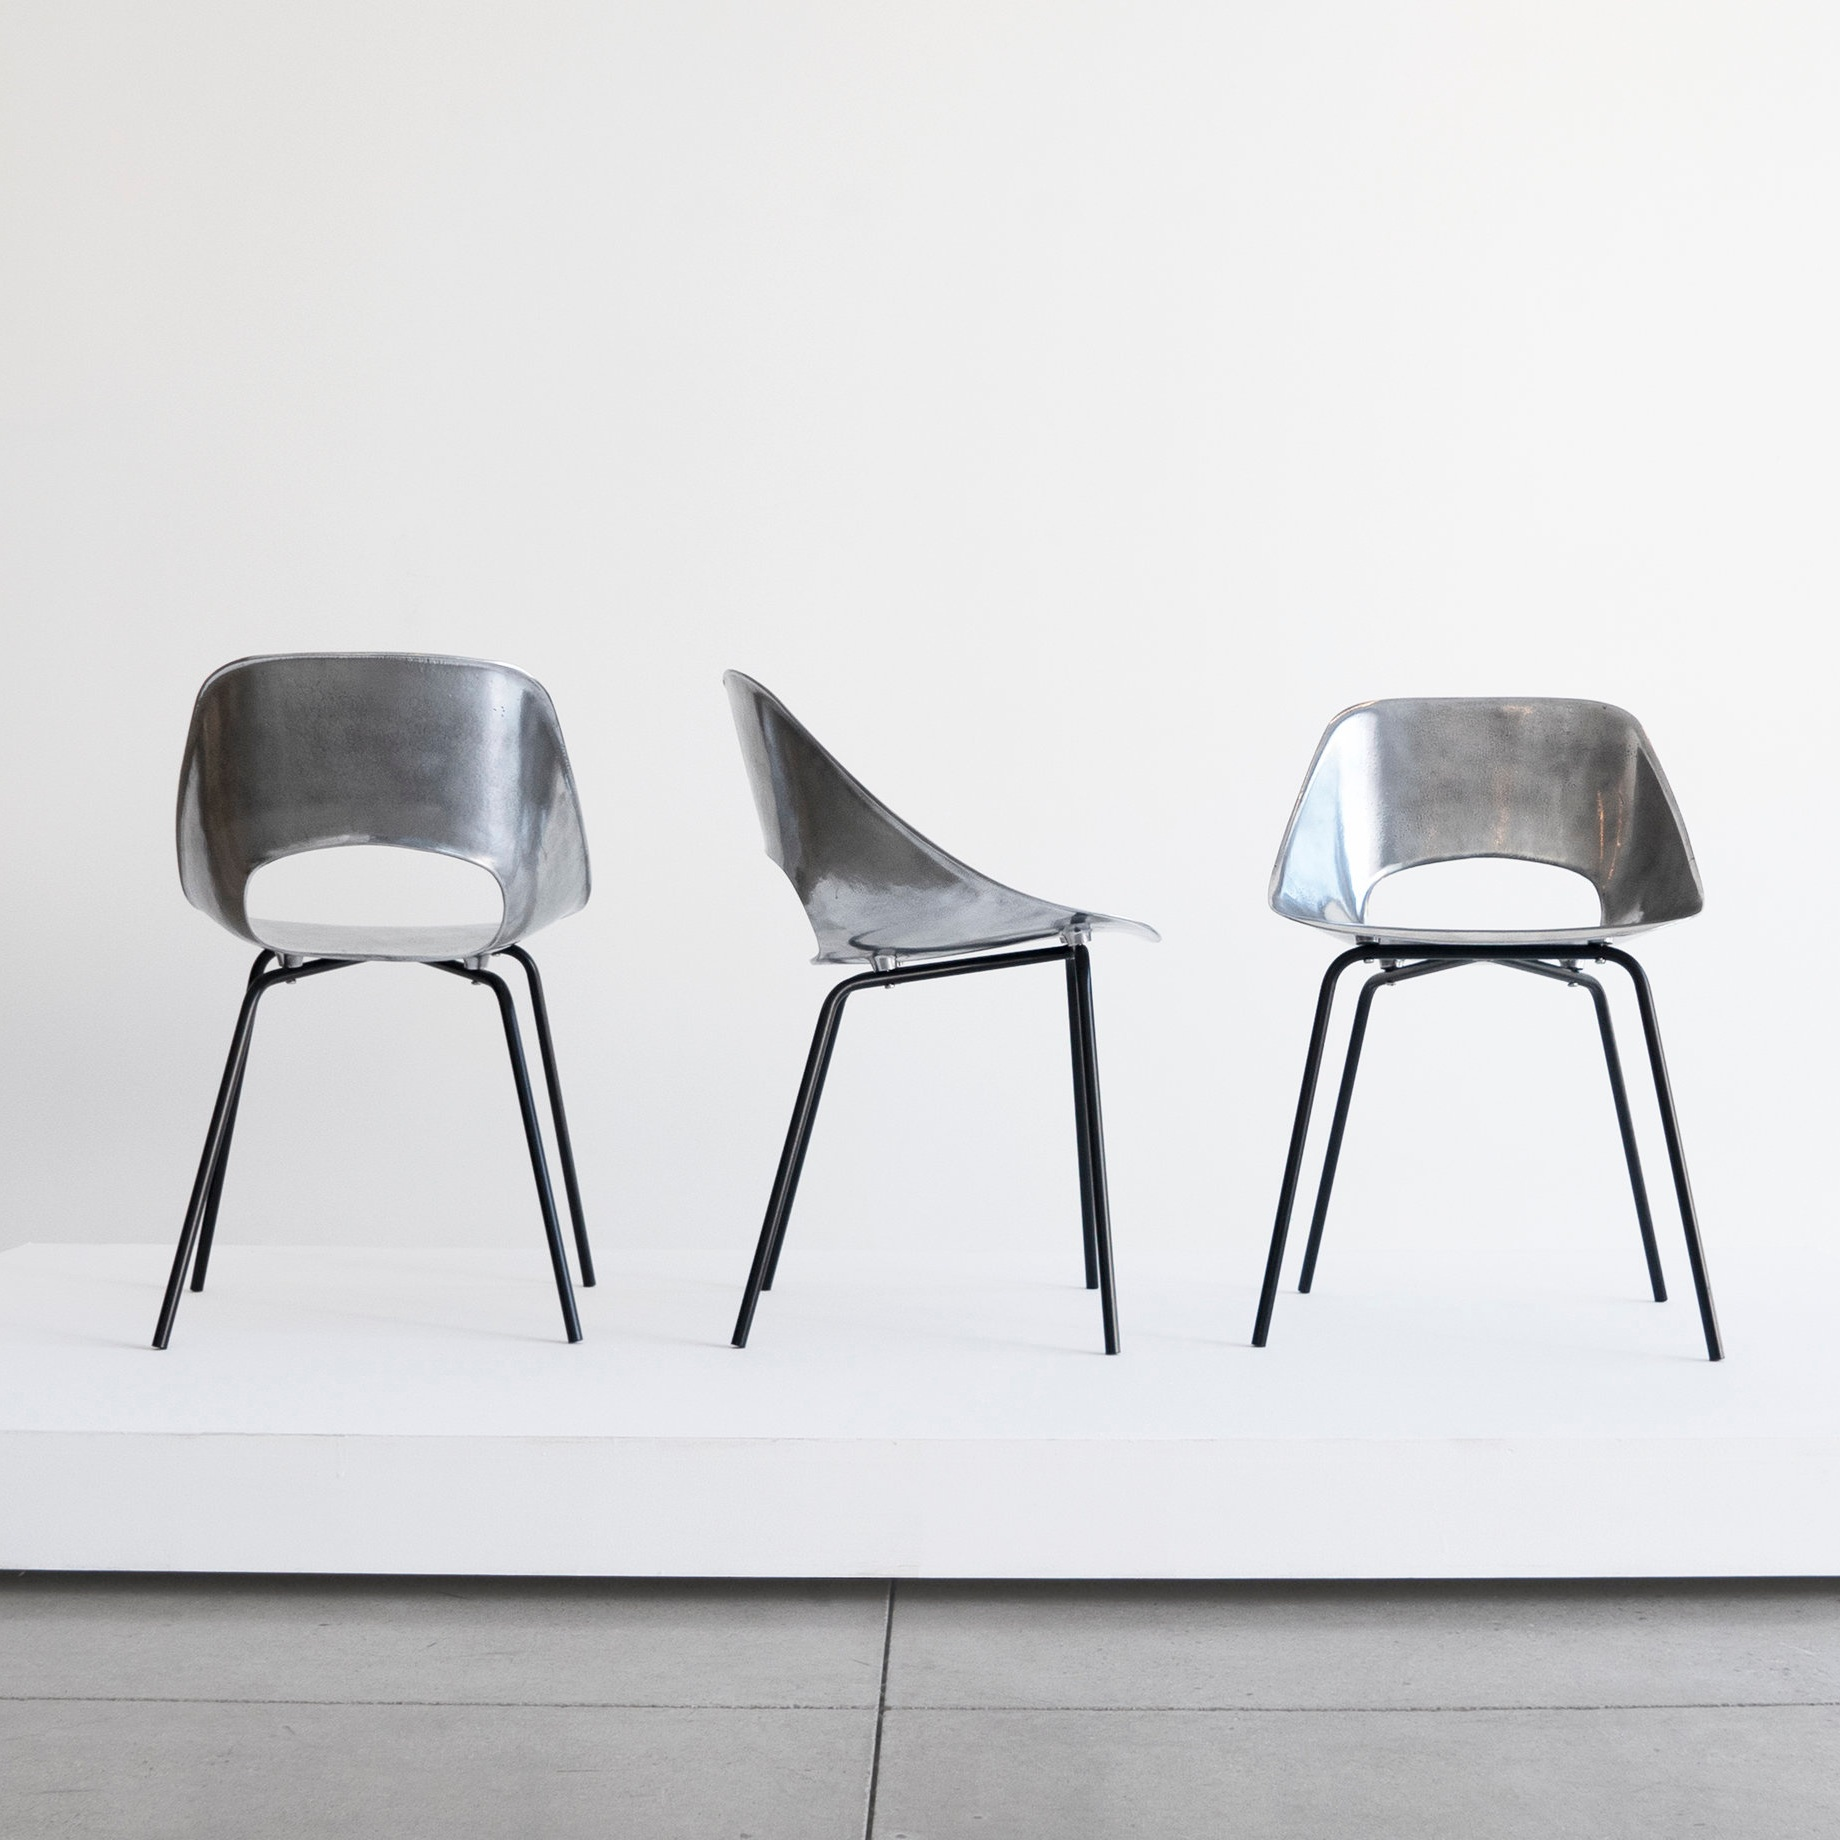 pierre guariche set of three 'tonneau' cast aluminum chairs $12,000